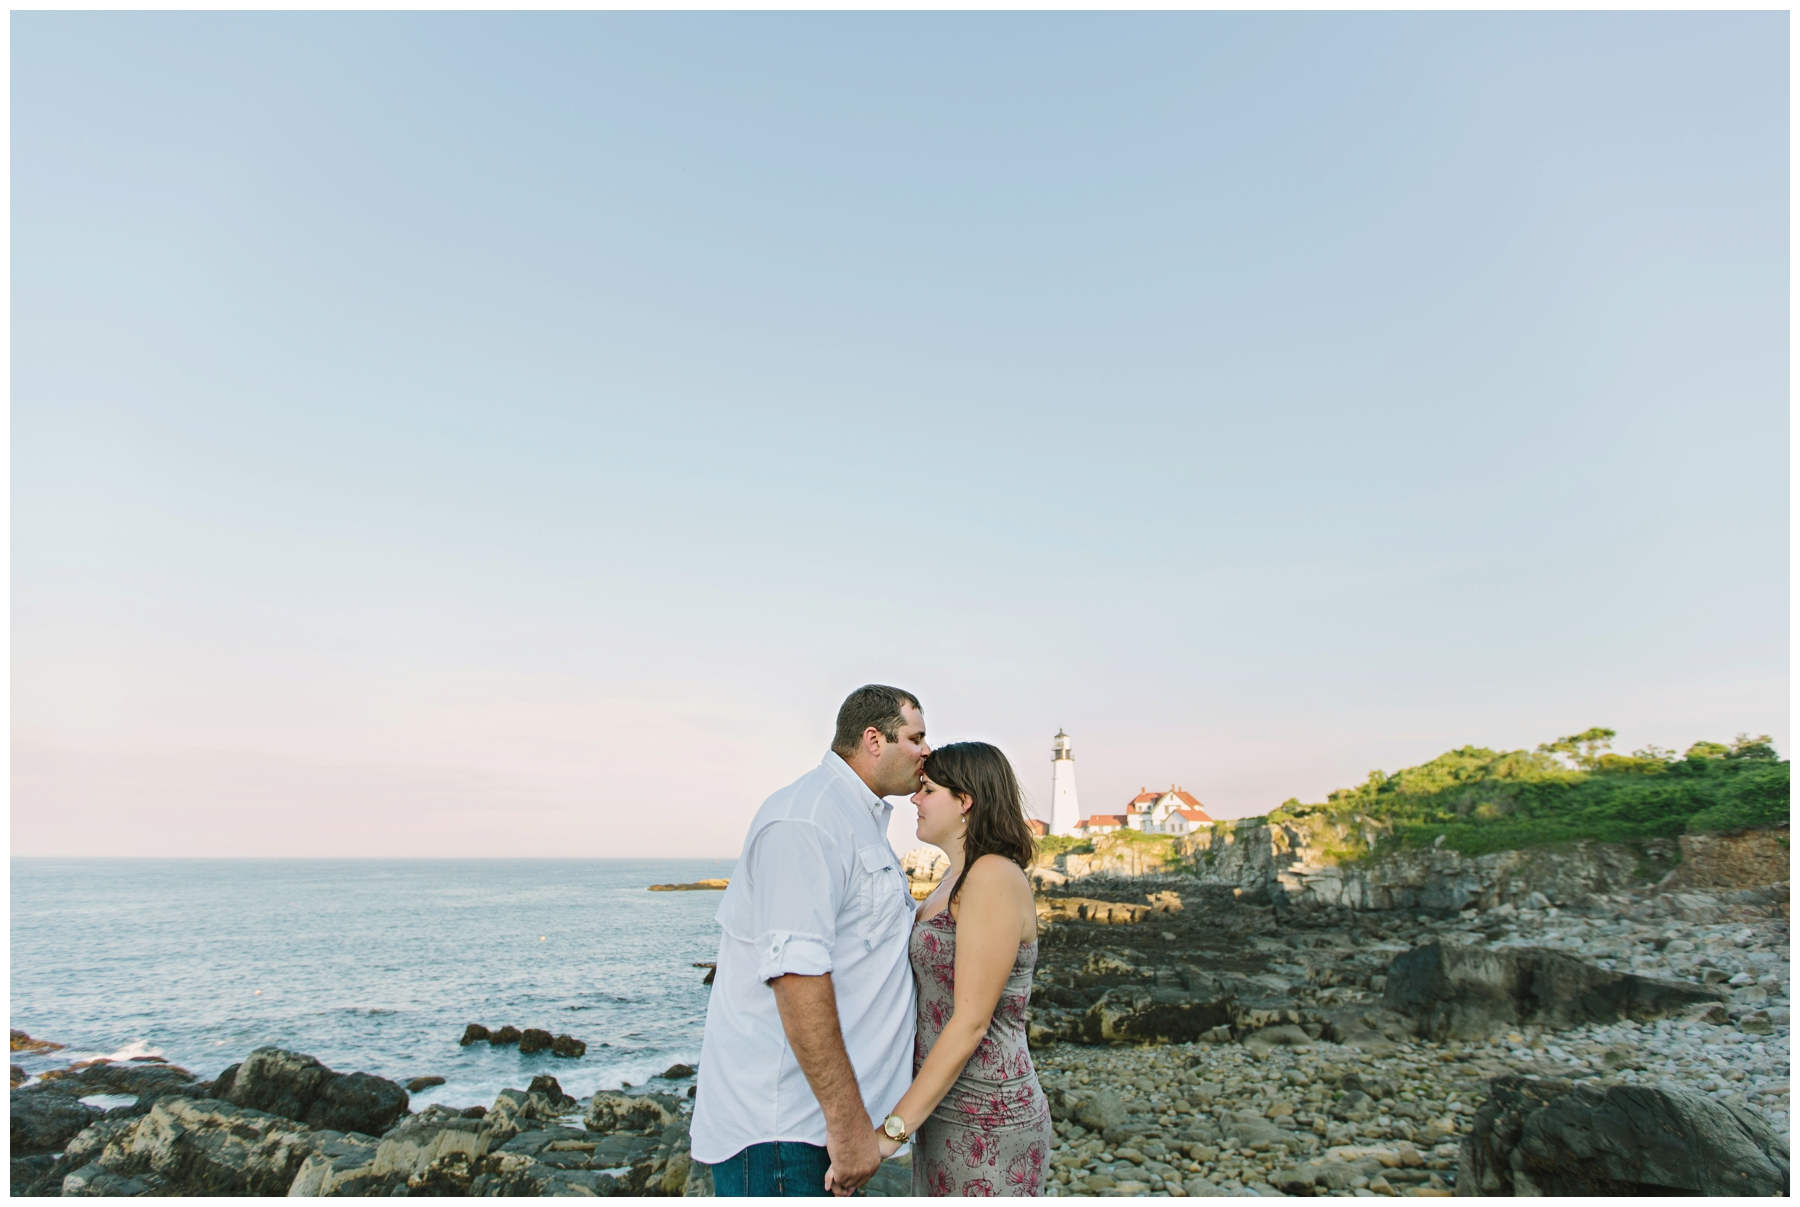 Maine_Photographer_Engagements_FortWilliams_PortlandHeadLight_lighthouse_coastal_seaside-006